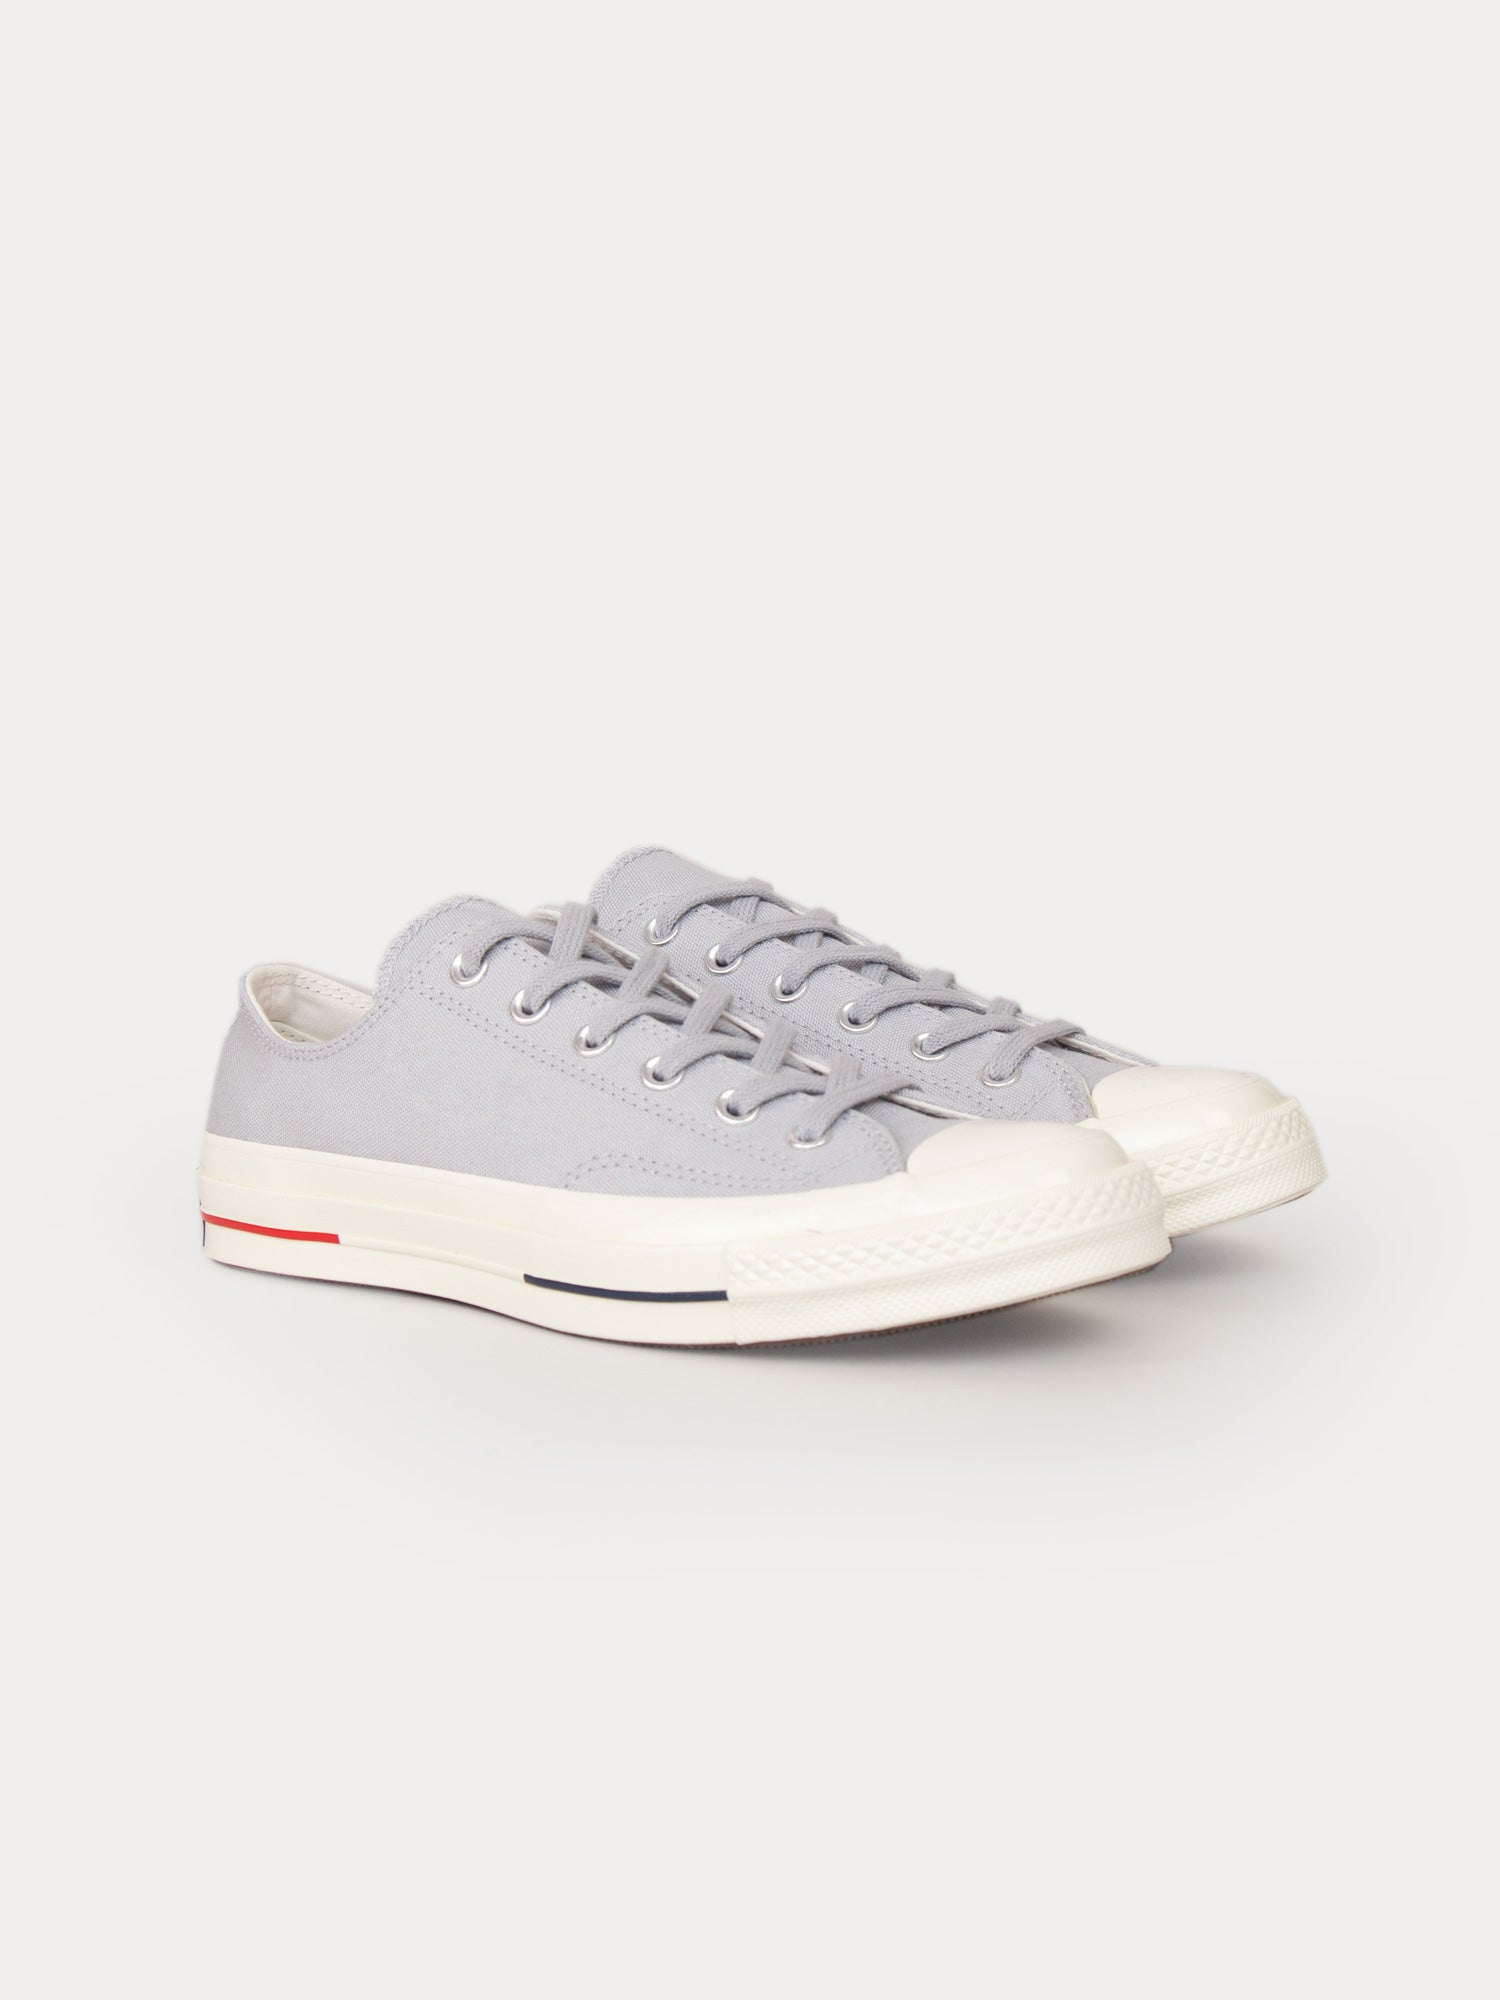 53541052b0b0 Converse-Chuck-Taylor-All-Star-70-Ox- Wolf-Grey -3.jpg v 1536507911